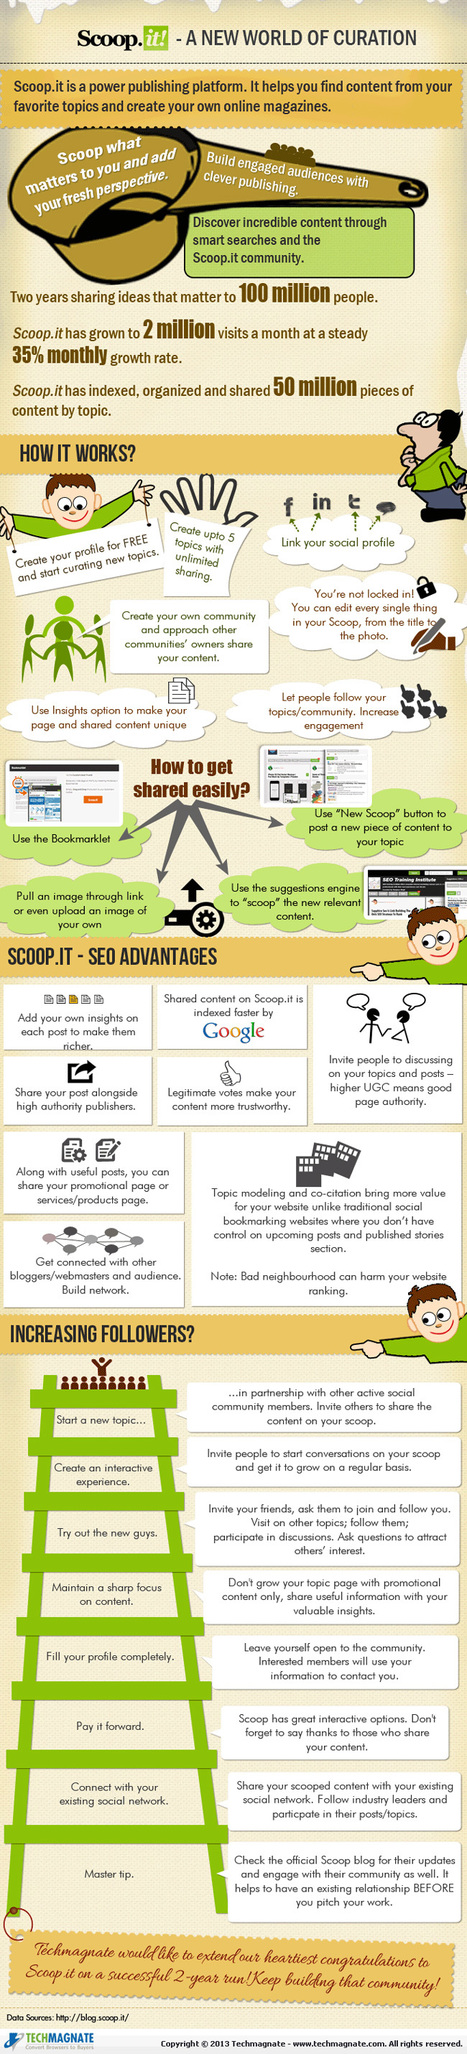 Scoop.It for SEO – A New World of Curation [Infographic] | SocialMediaDesign | Scoop.it